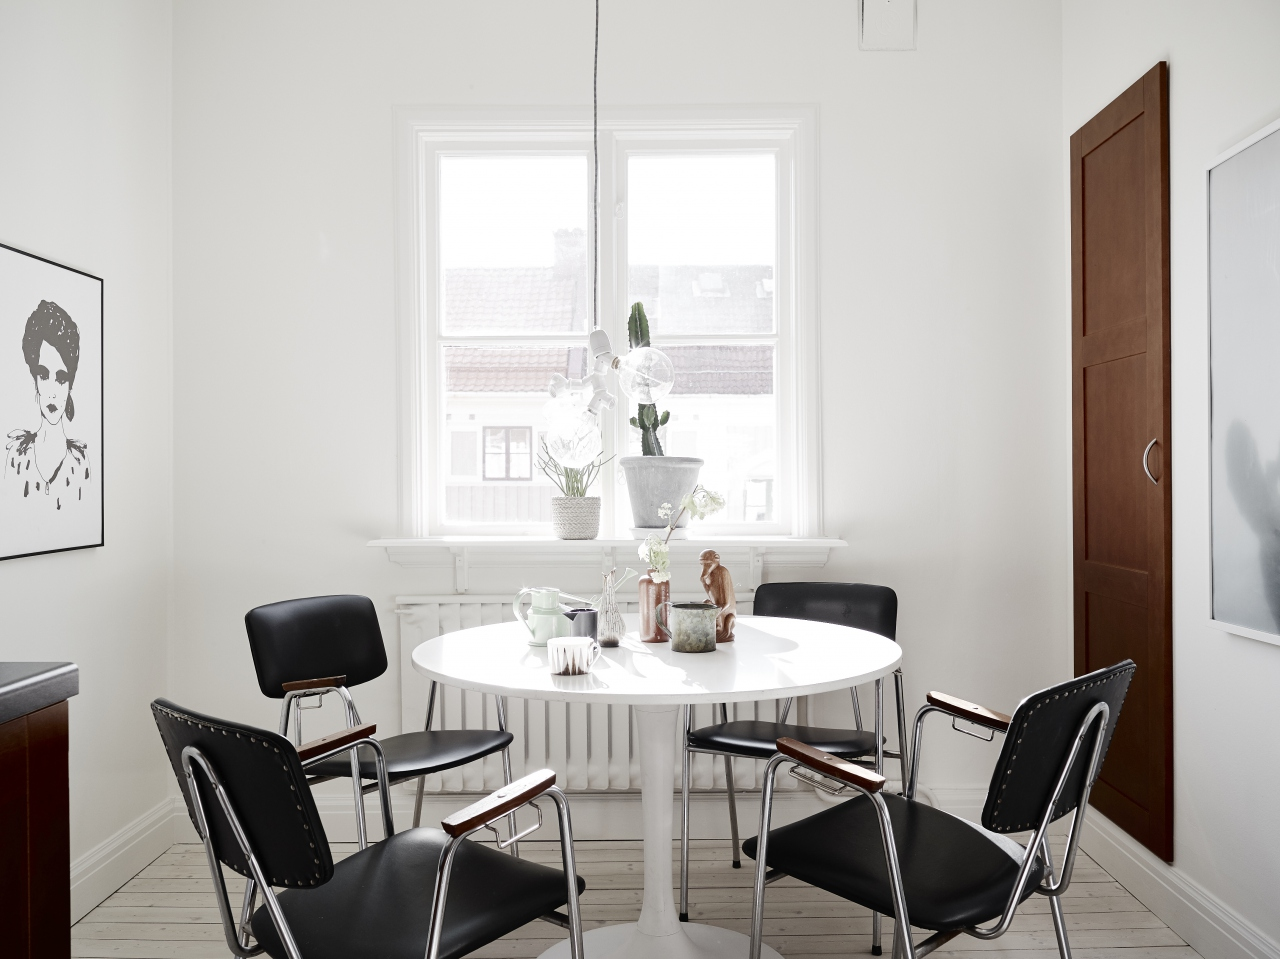 Nordic home with muted colors and vintage items - via cocolapinedesign@gmail.com